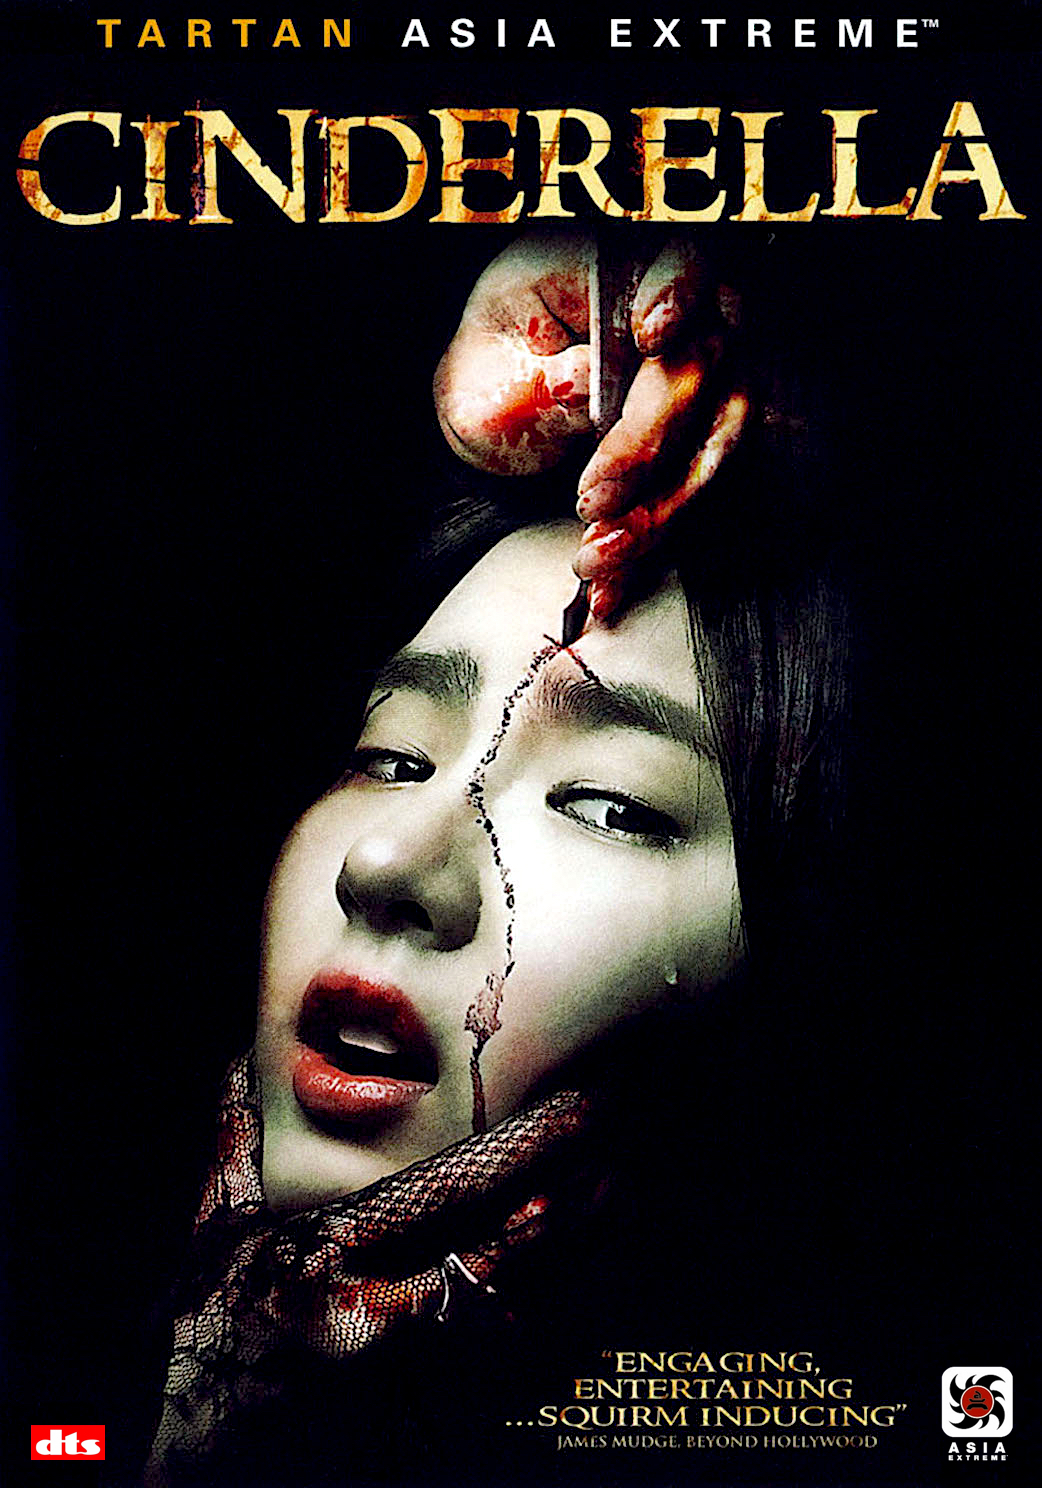 Extreme asian movies 11